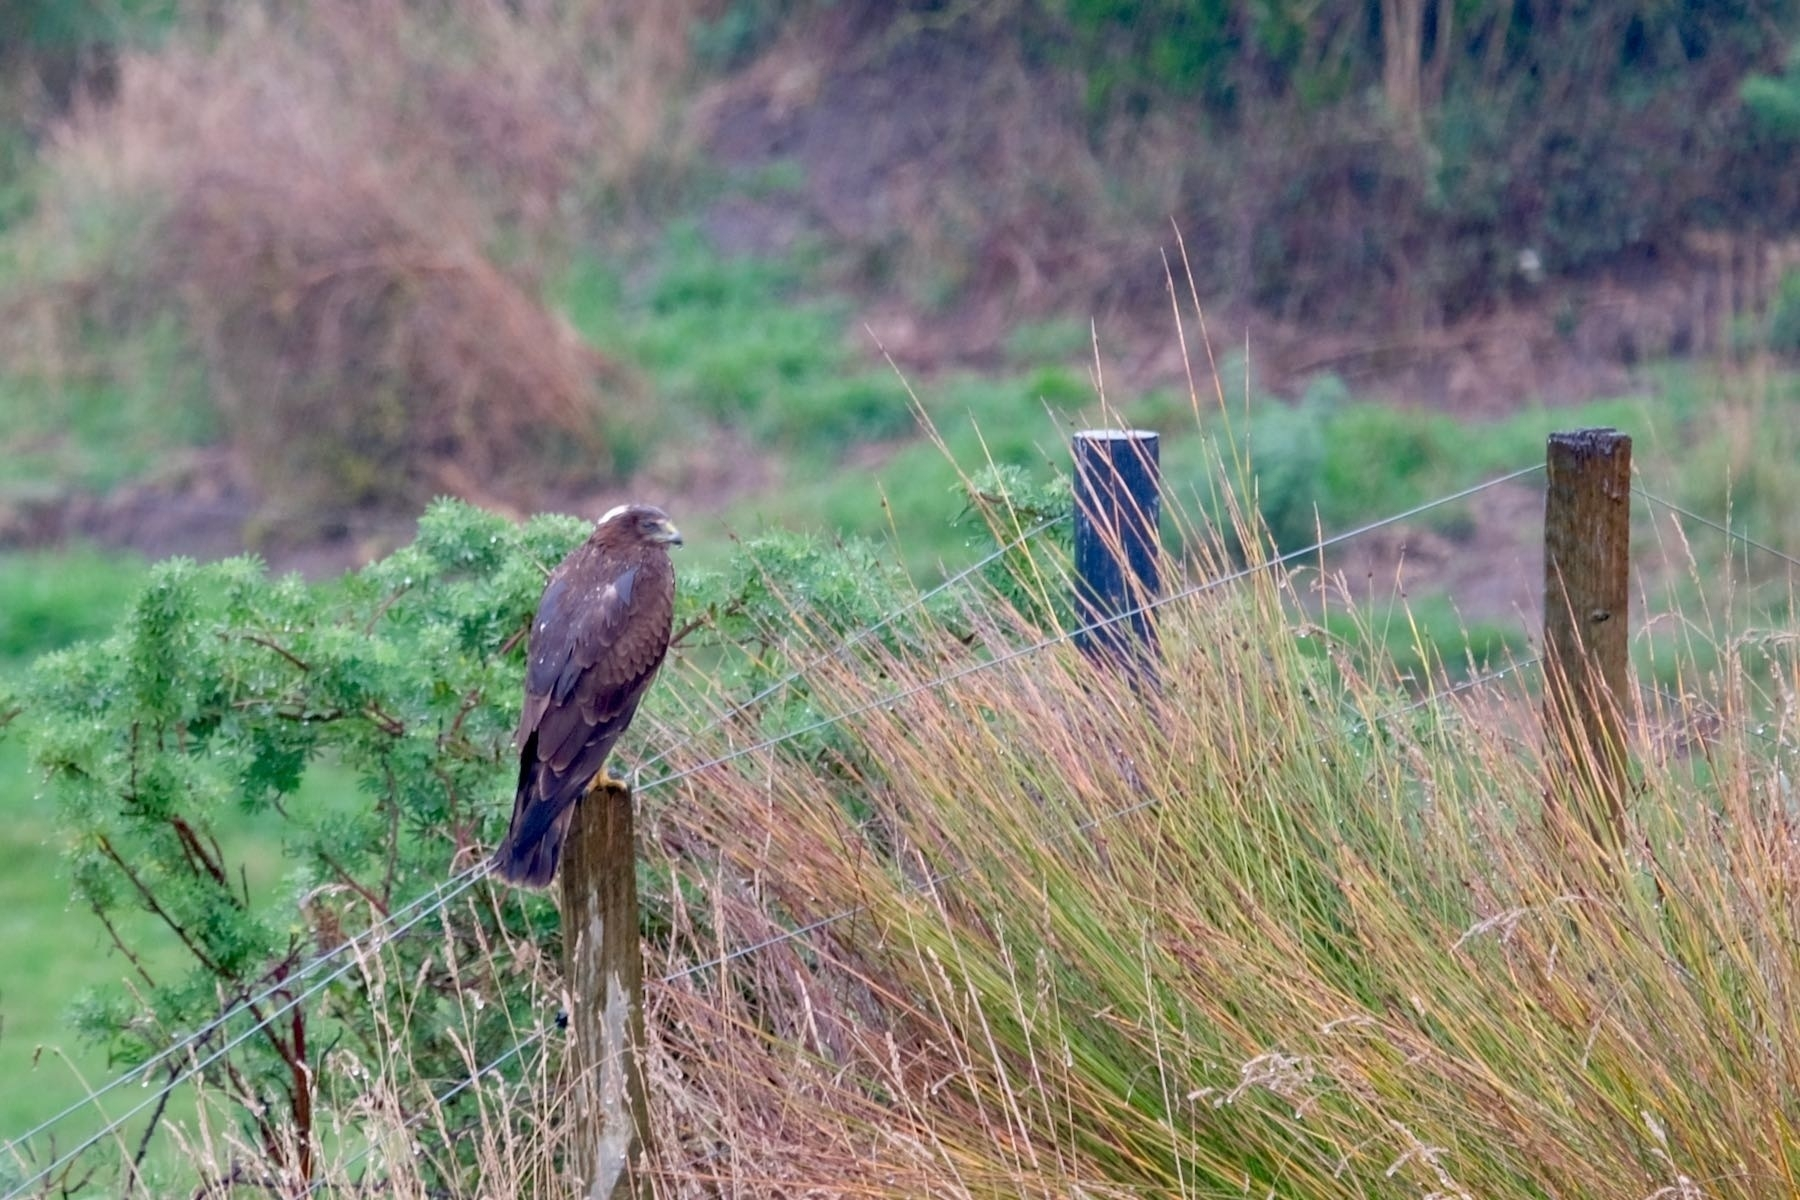 Hawk with head turned, on a fence post.